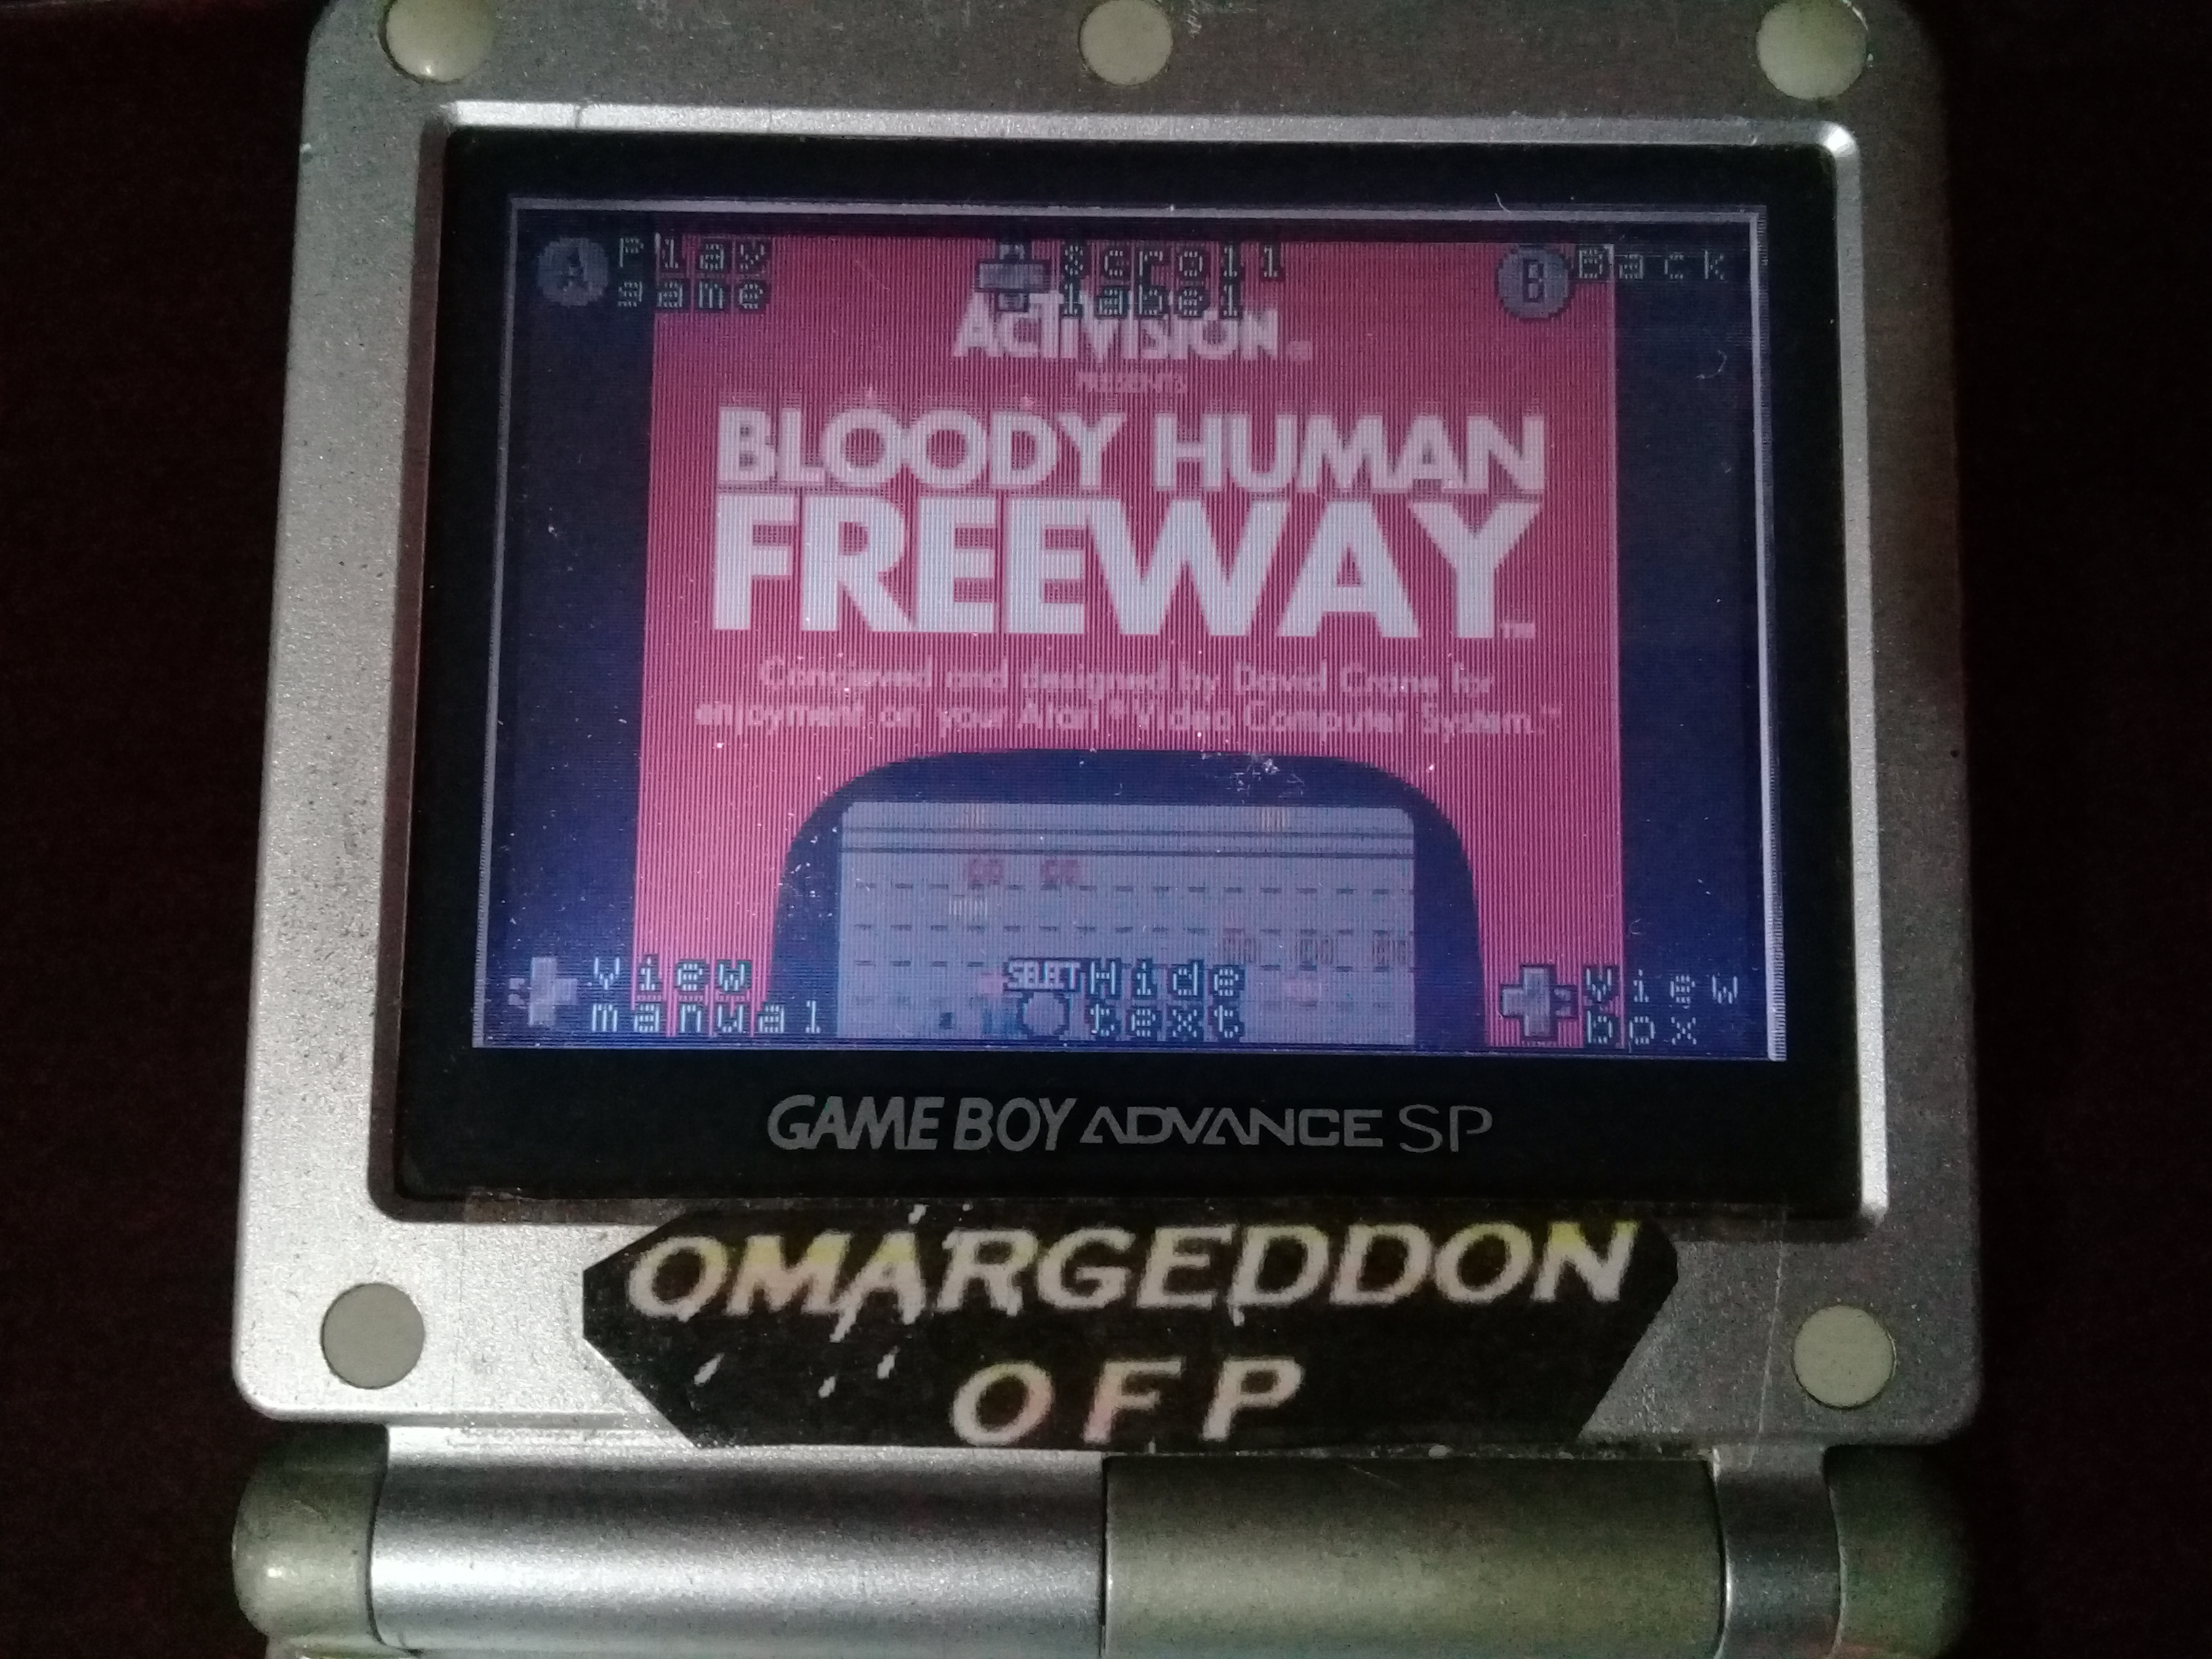 omargeddon: Activision Anthology: Bloody Human Freeway [Game 1] (GBA) 28 points on 2019-10-29 09:49:38